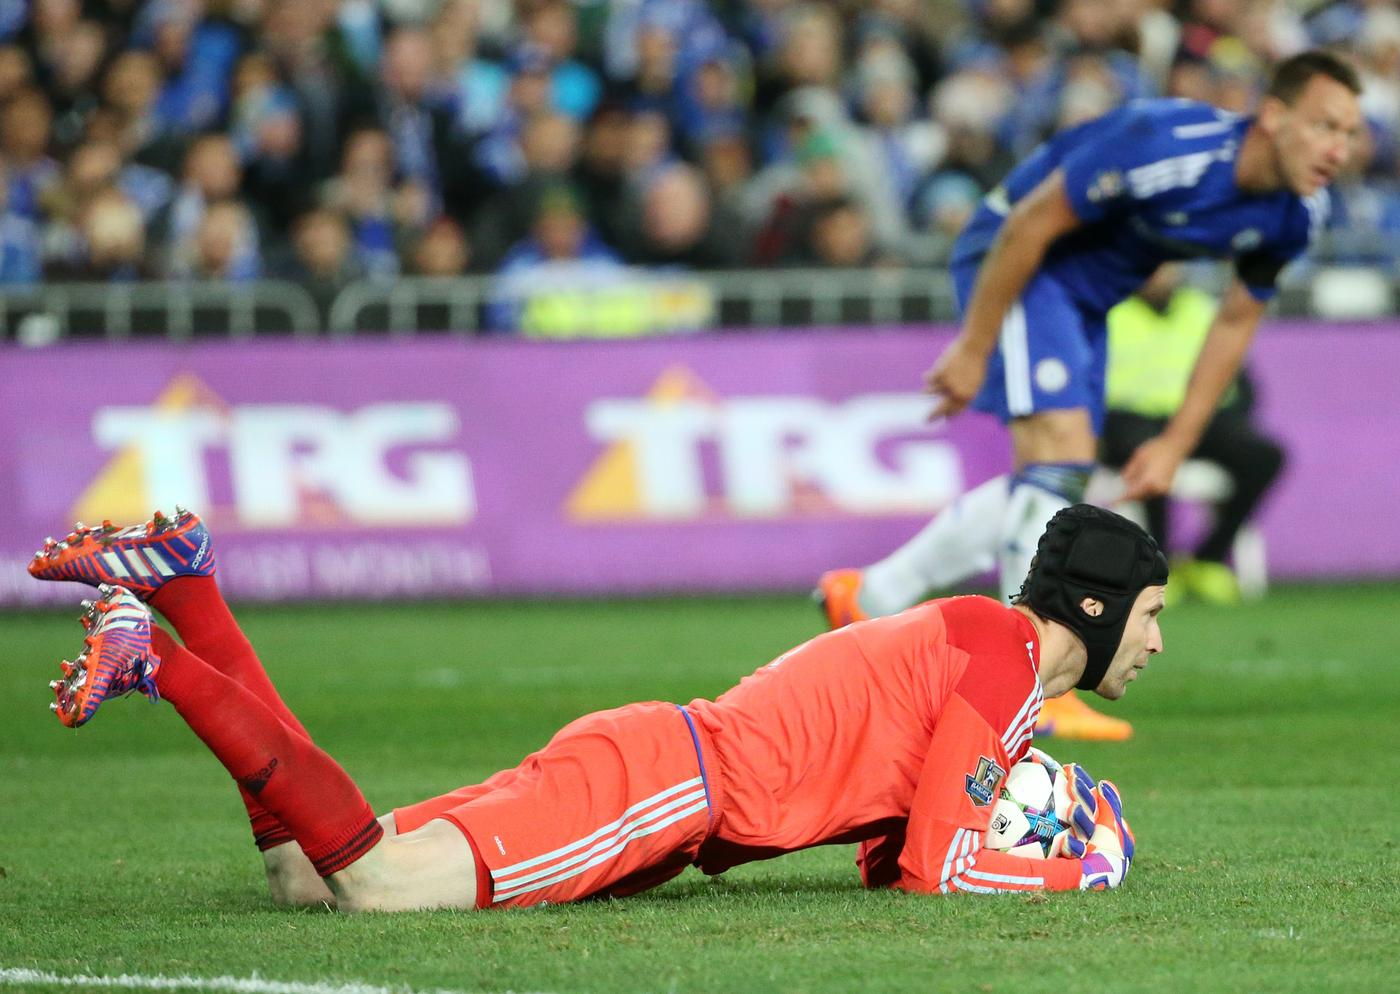 Bookies slash odds on Petr Cech completing transfer to Manchester United from Chelsea